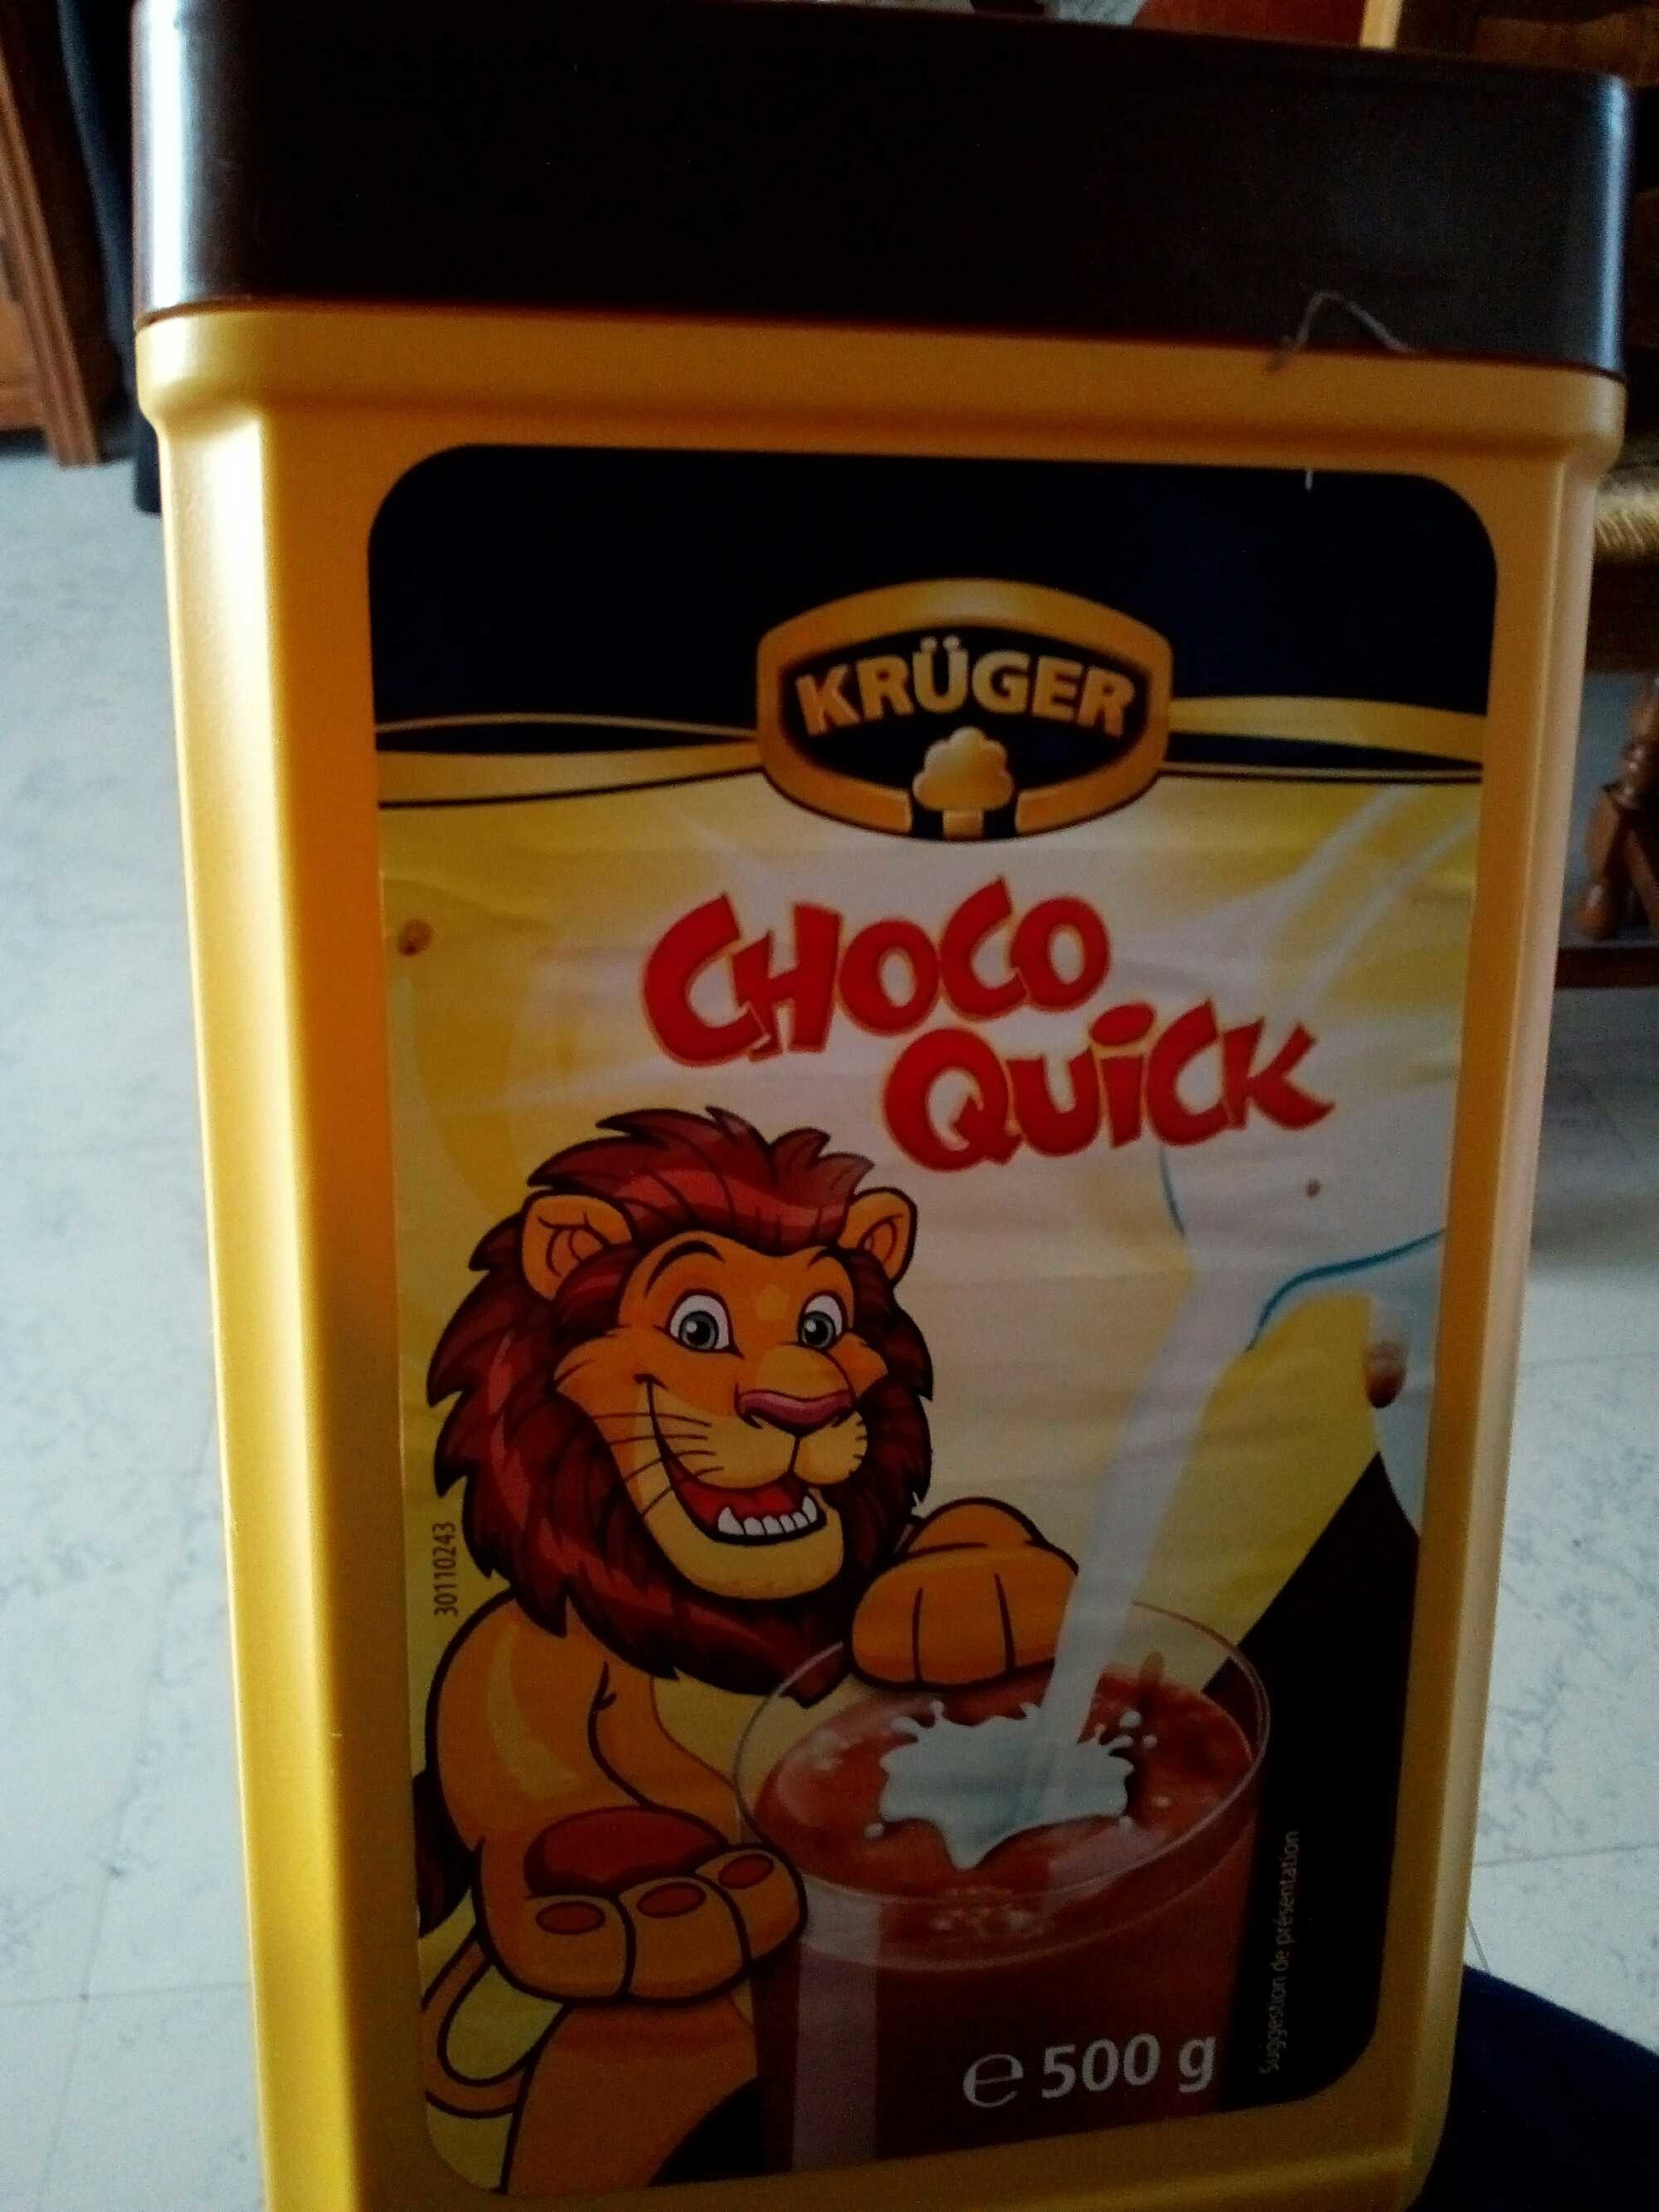 Choco quick - Product - fr